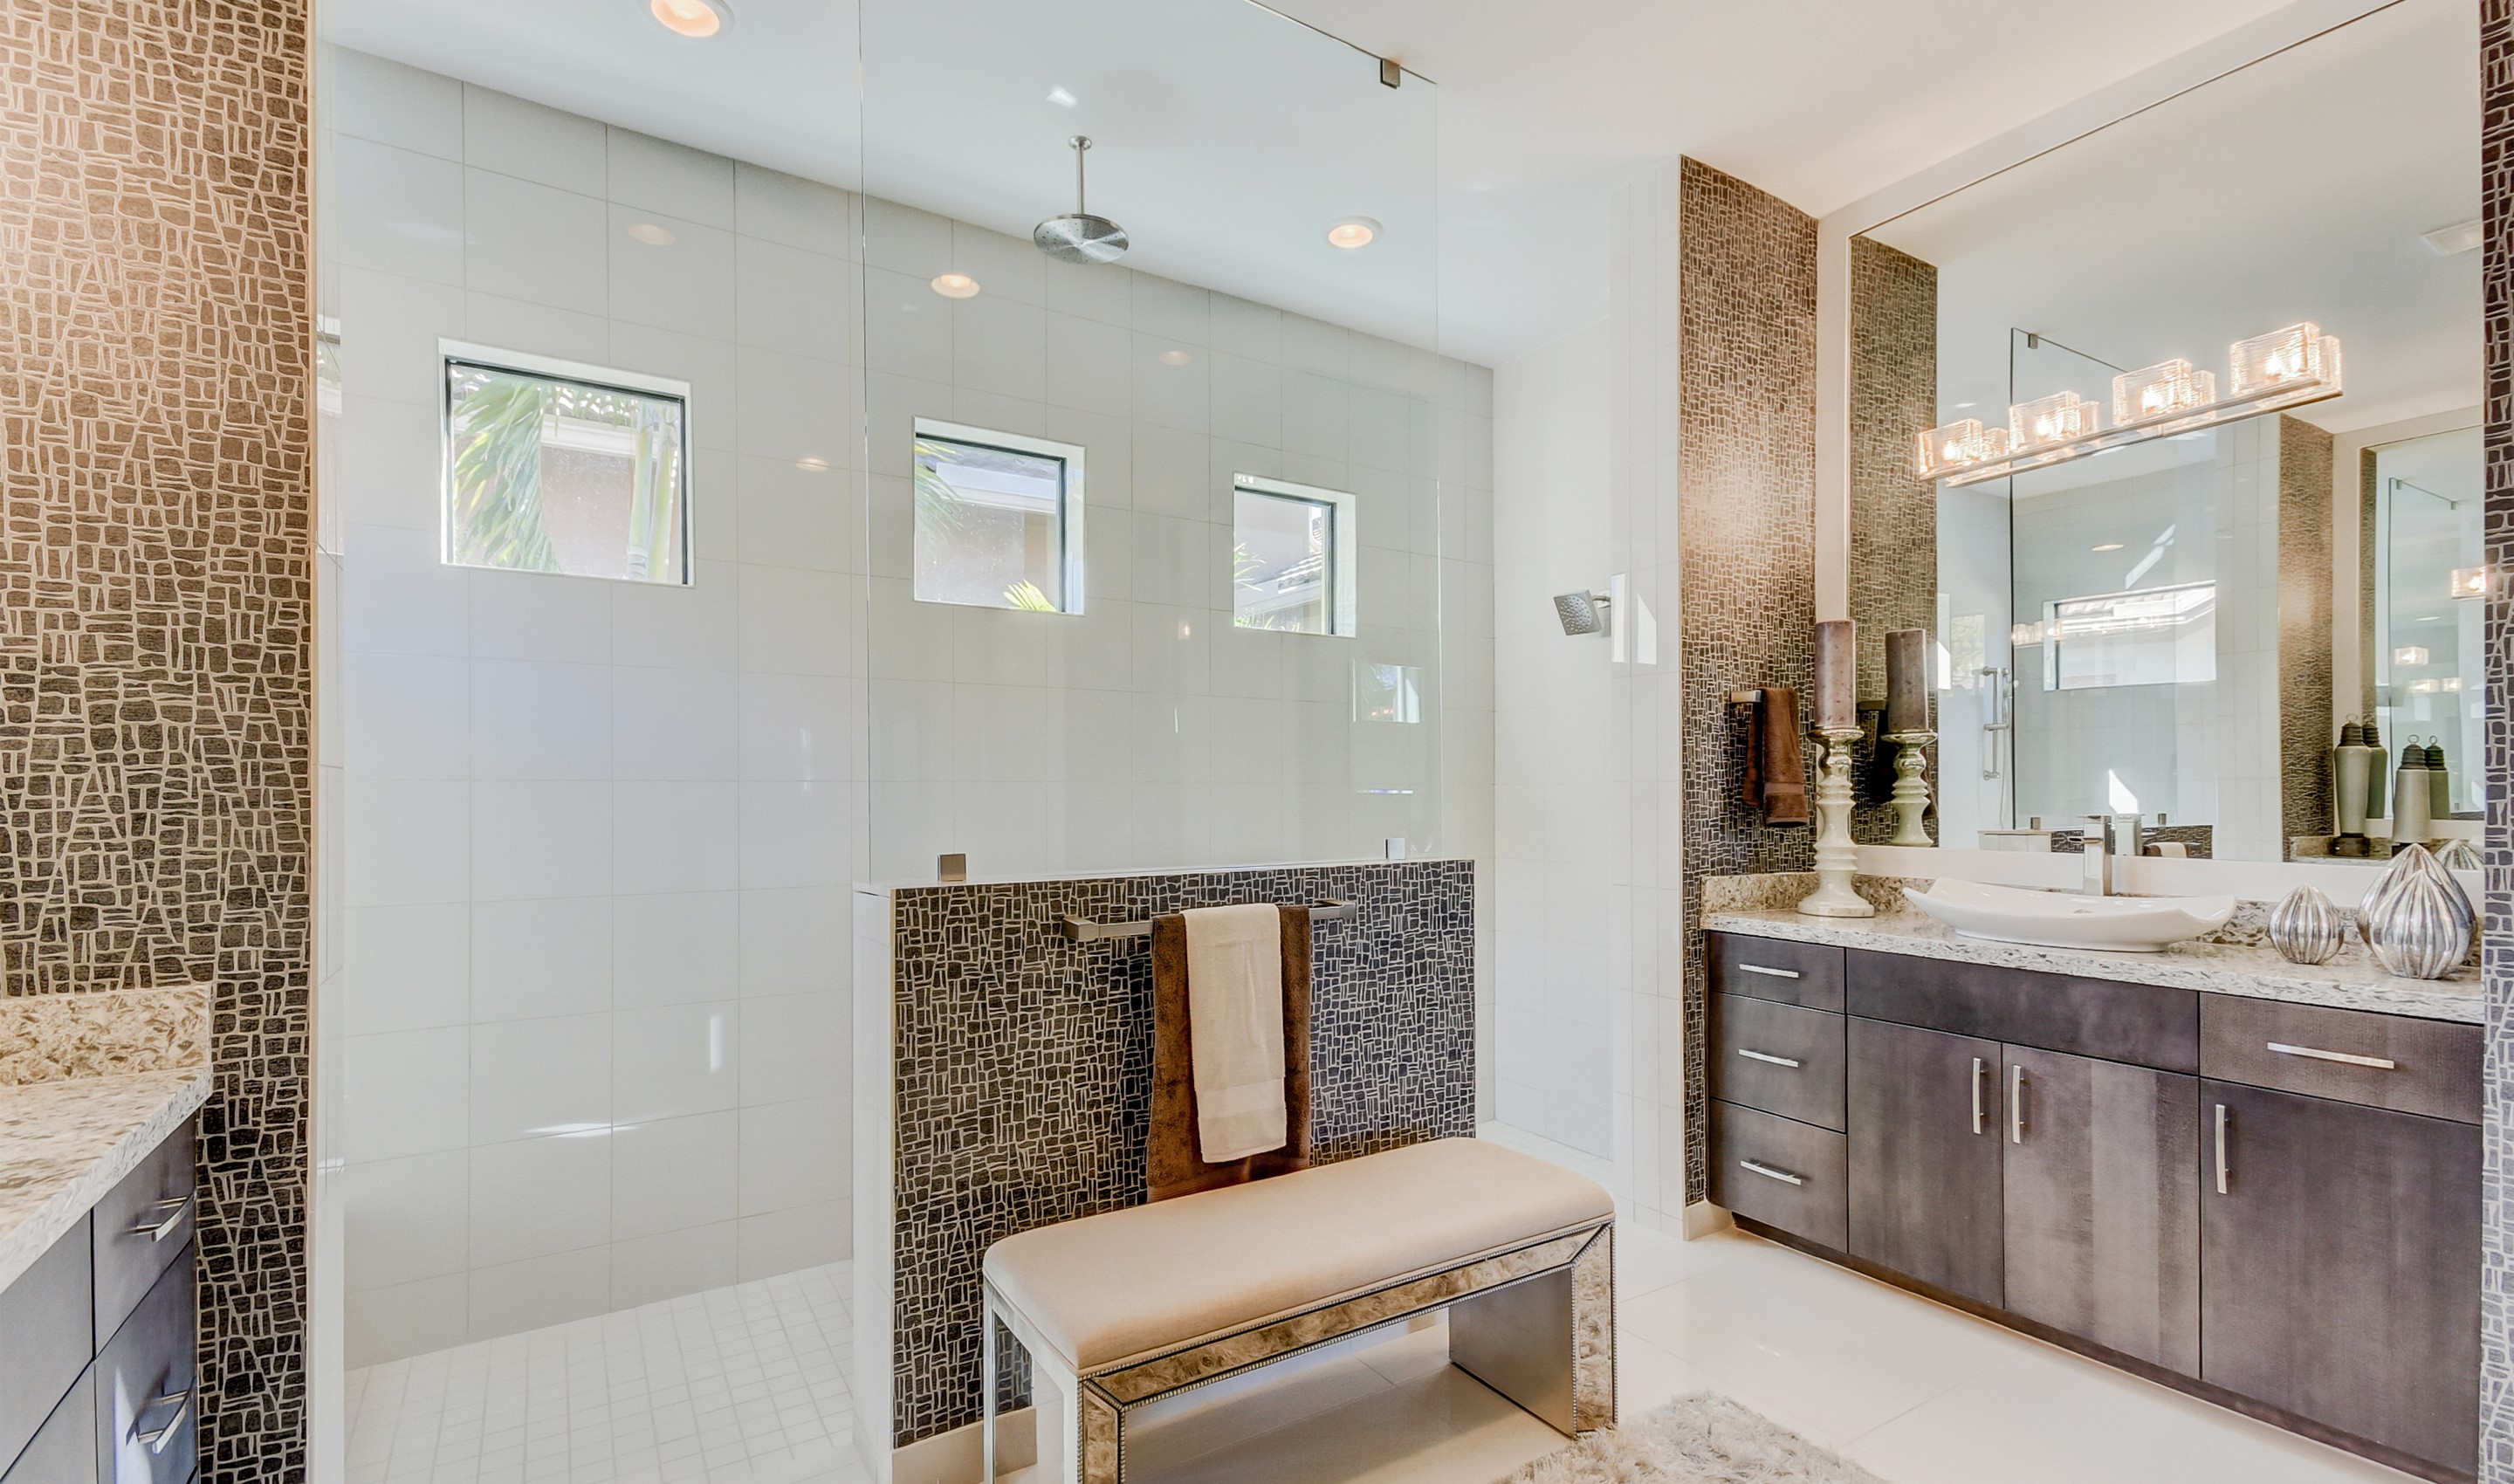 Owner's bath with large shower